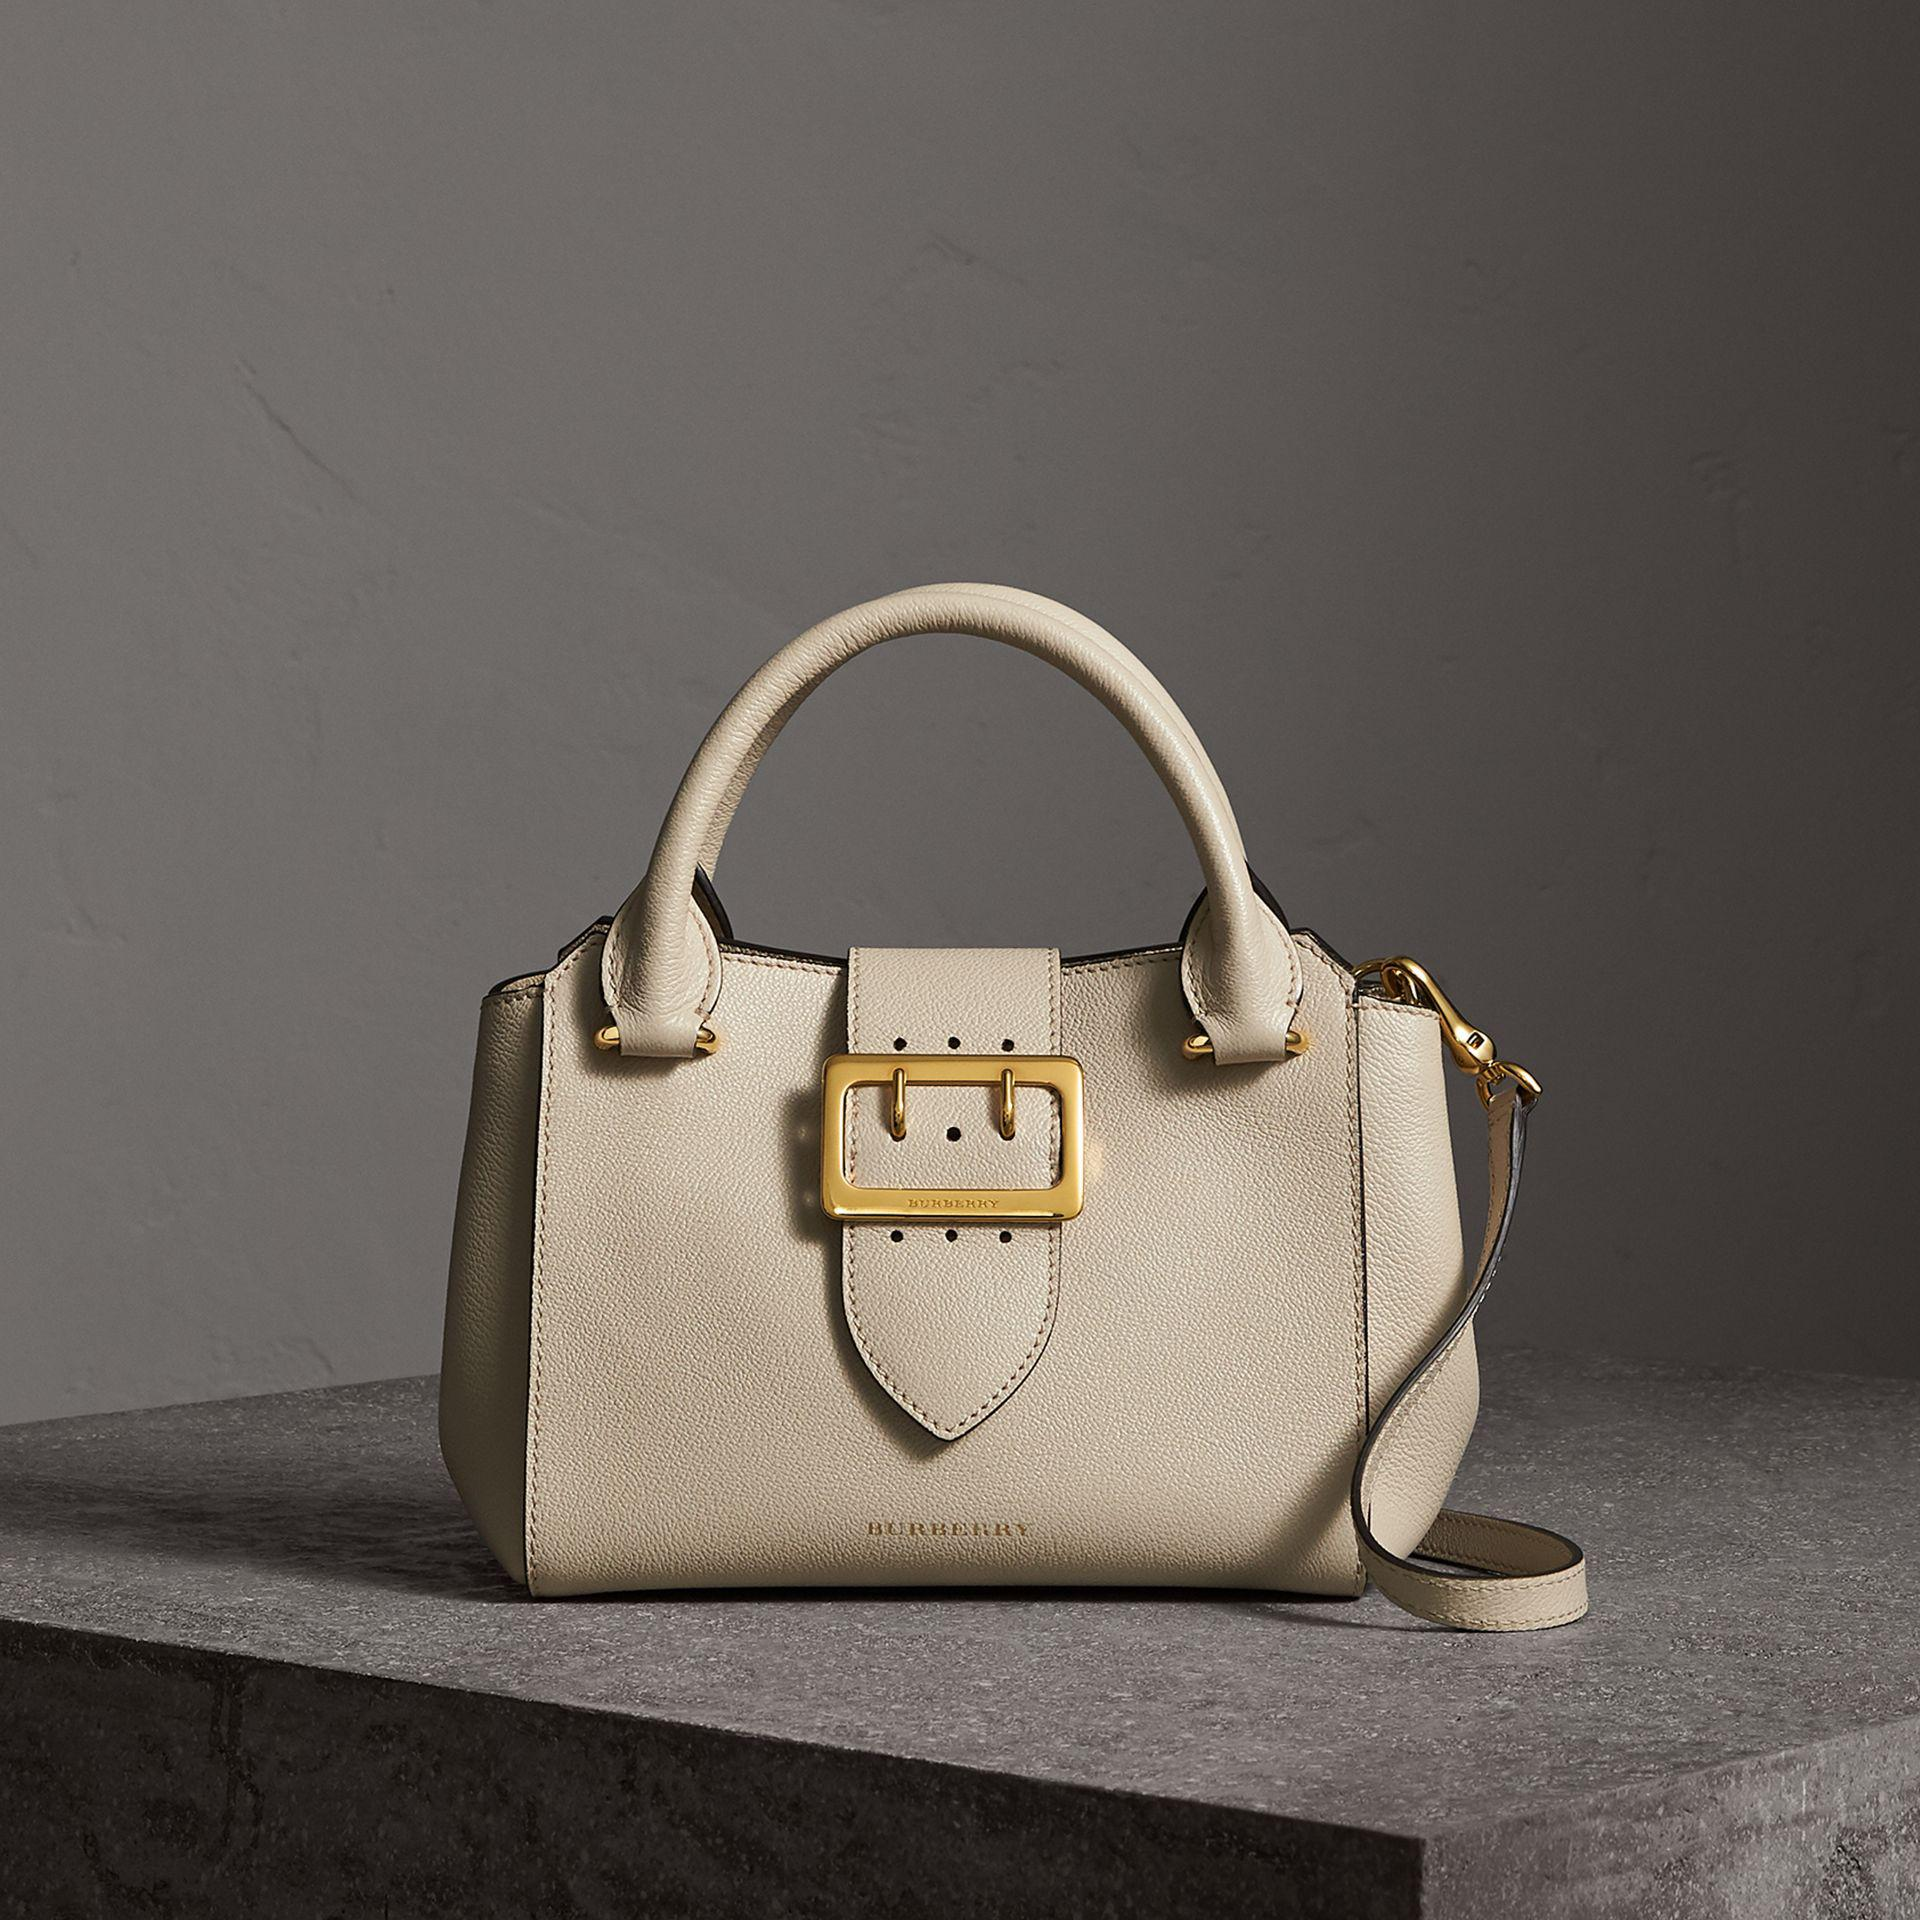 5e5cc36d0267 Burberry The Small Buckle Tote In Grainy Leather Limestone in ...